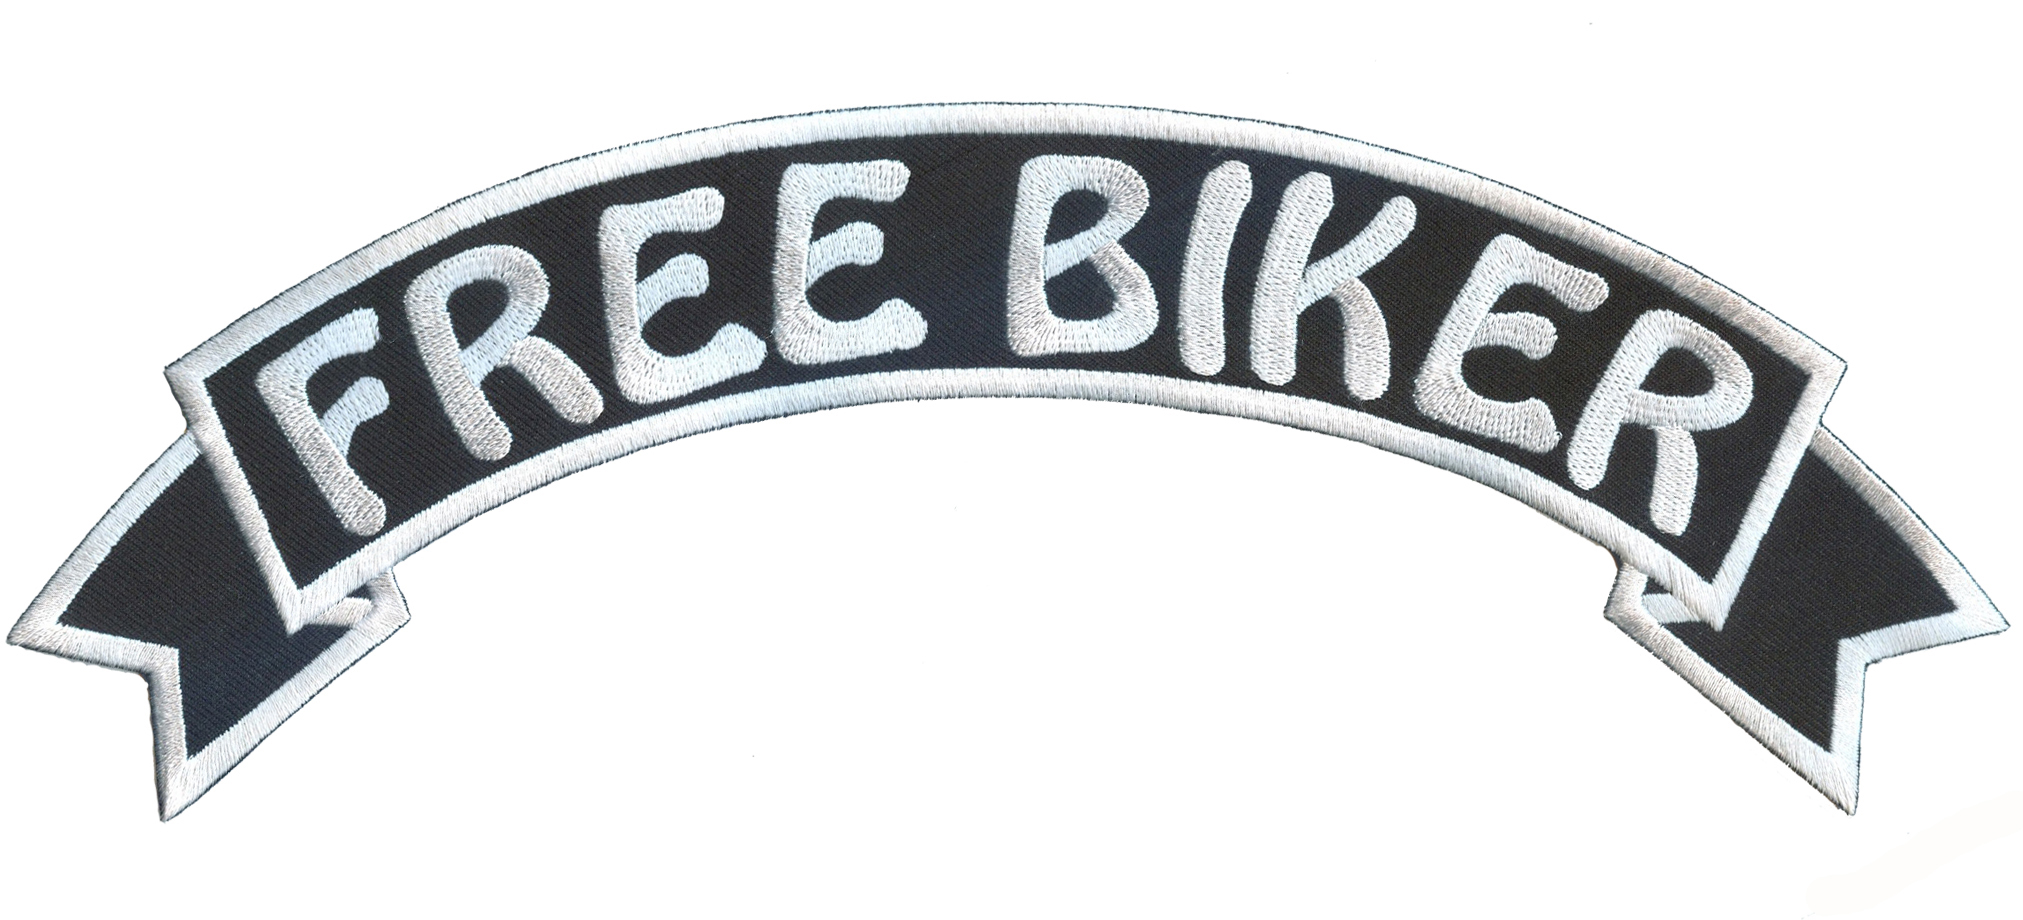 Freebiker free biker motorcycle patch - (embroidery, woven, badges, labels